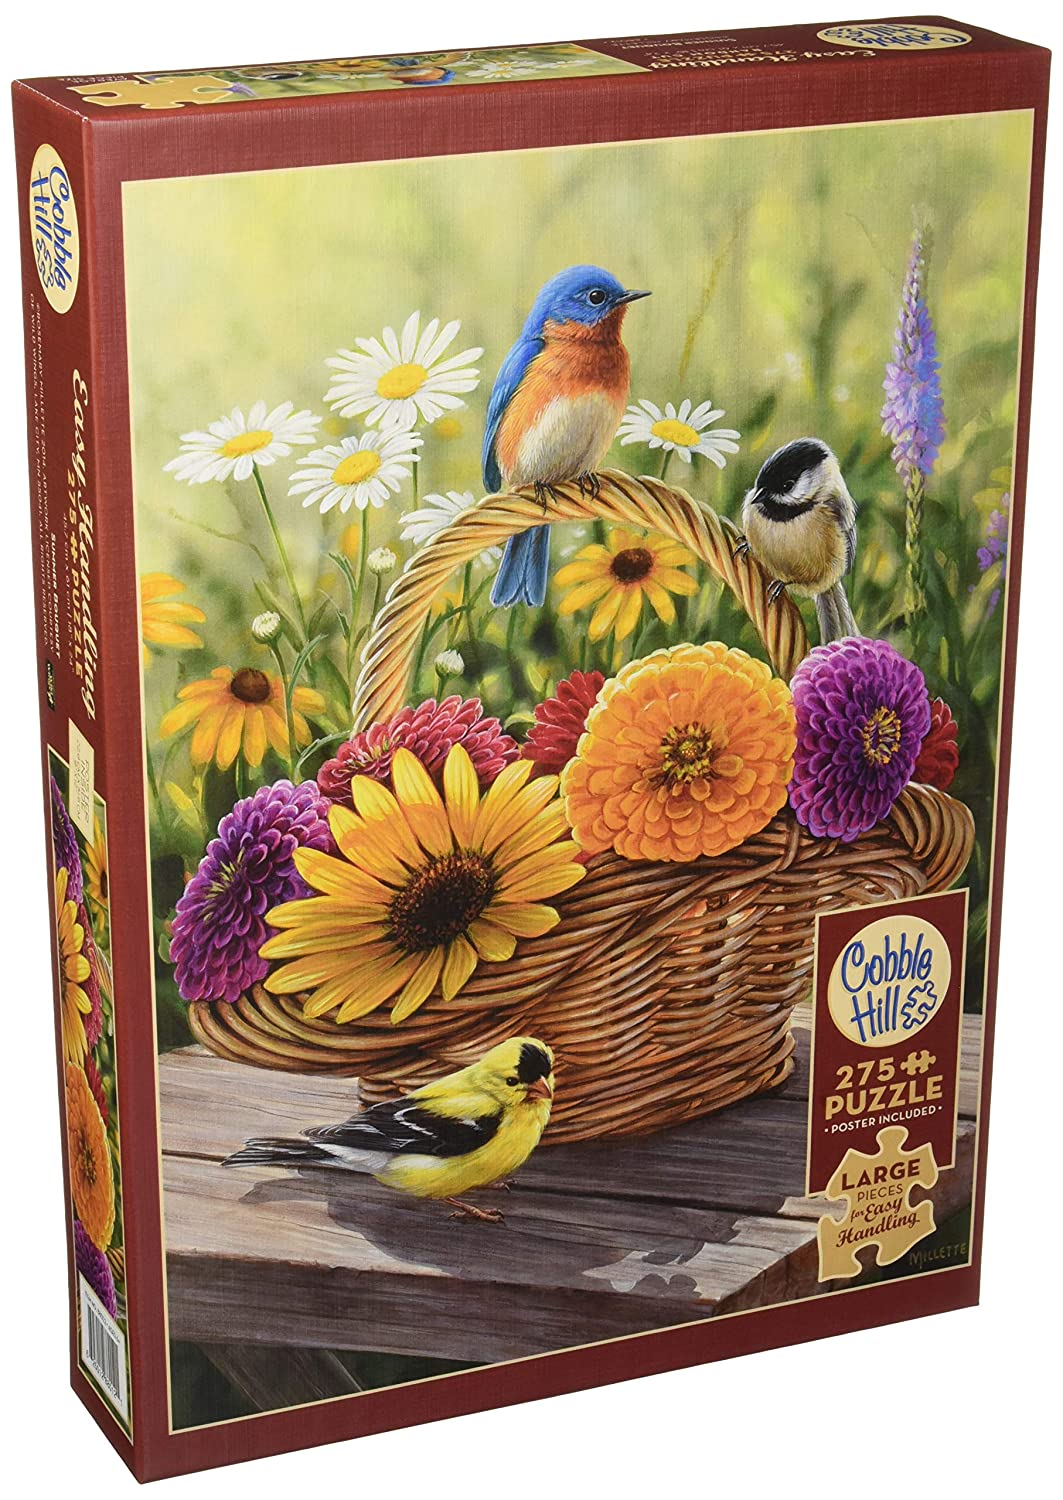 【驚きの値段】 Cobblehill 88012 XL 275 pc Summer 275 88012 Bouquet Puzzle, Puzzle, Various B07CP4ZFKM, イチマル:6c4a5893 --- fenixevent.ee